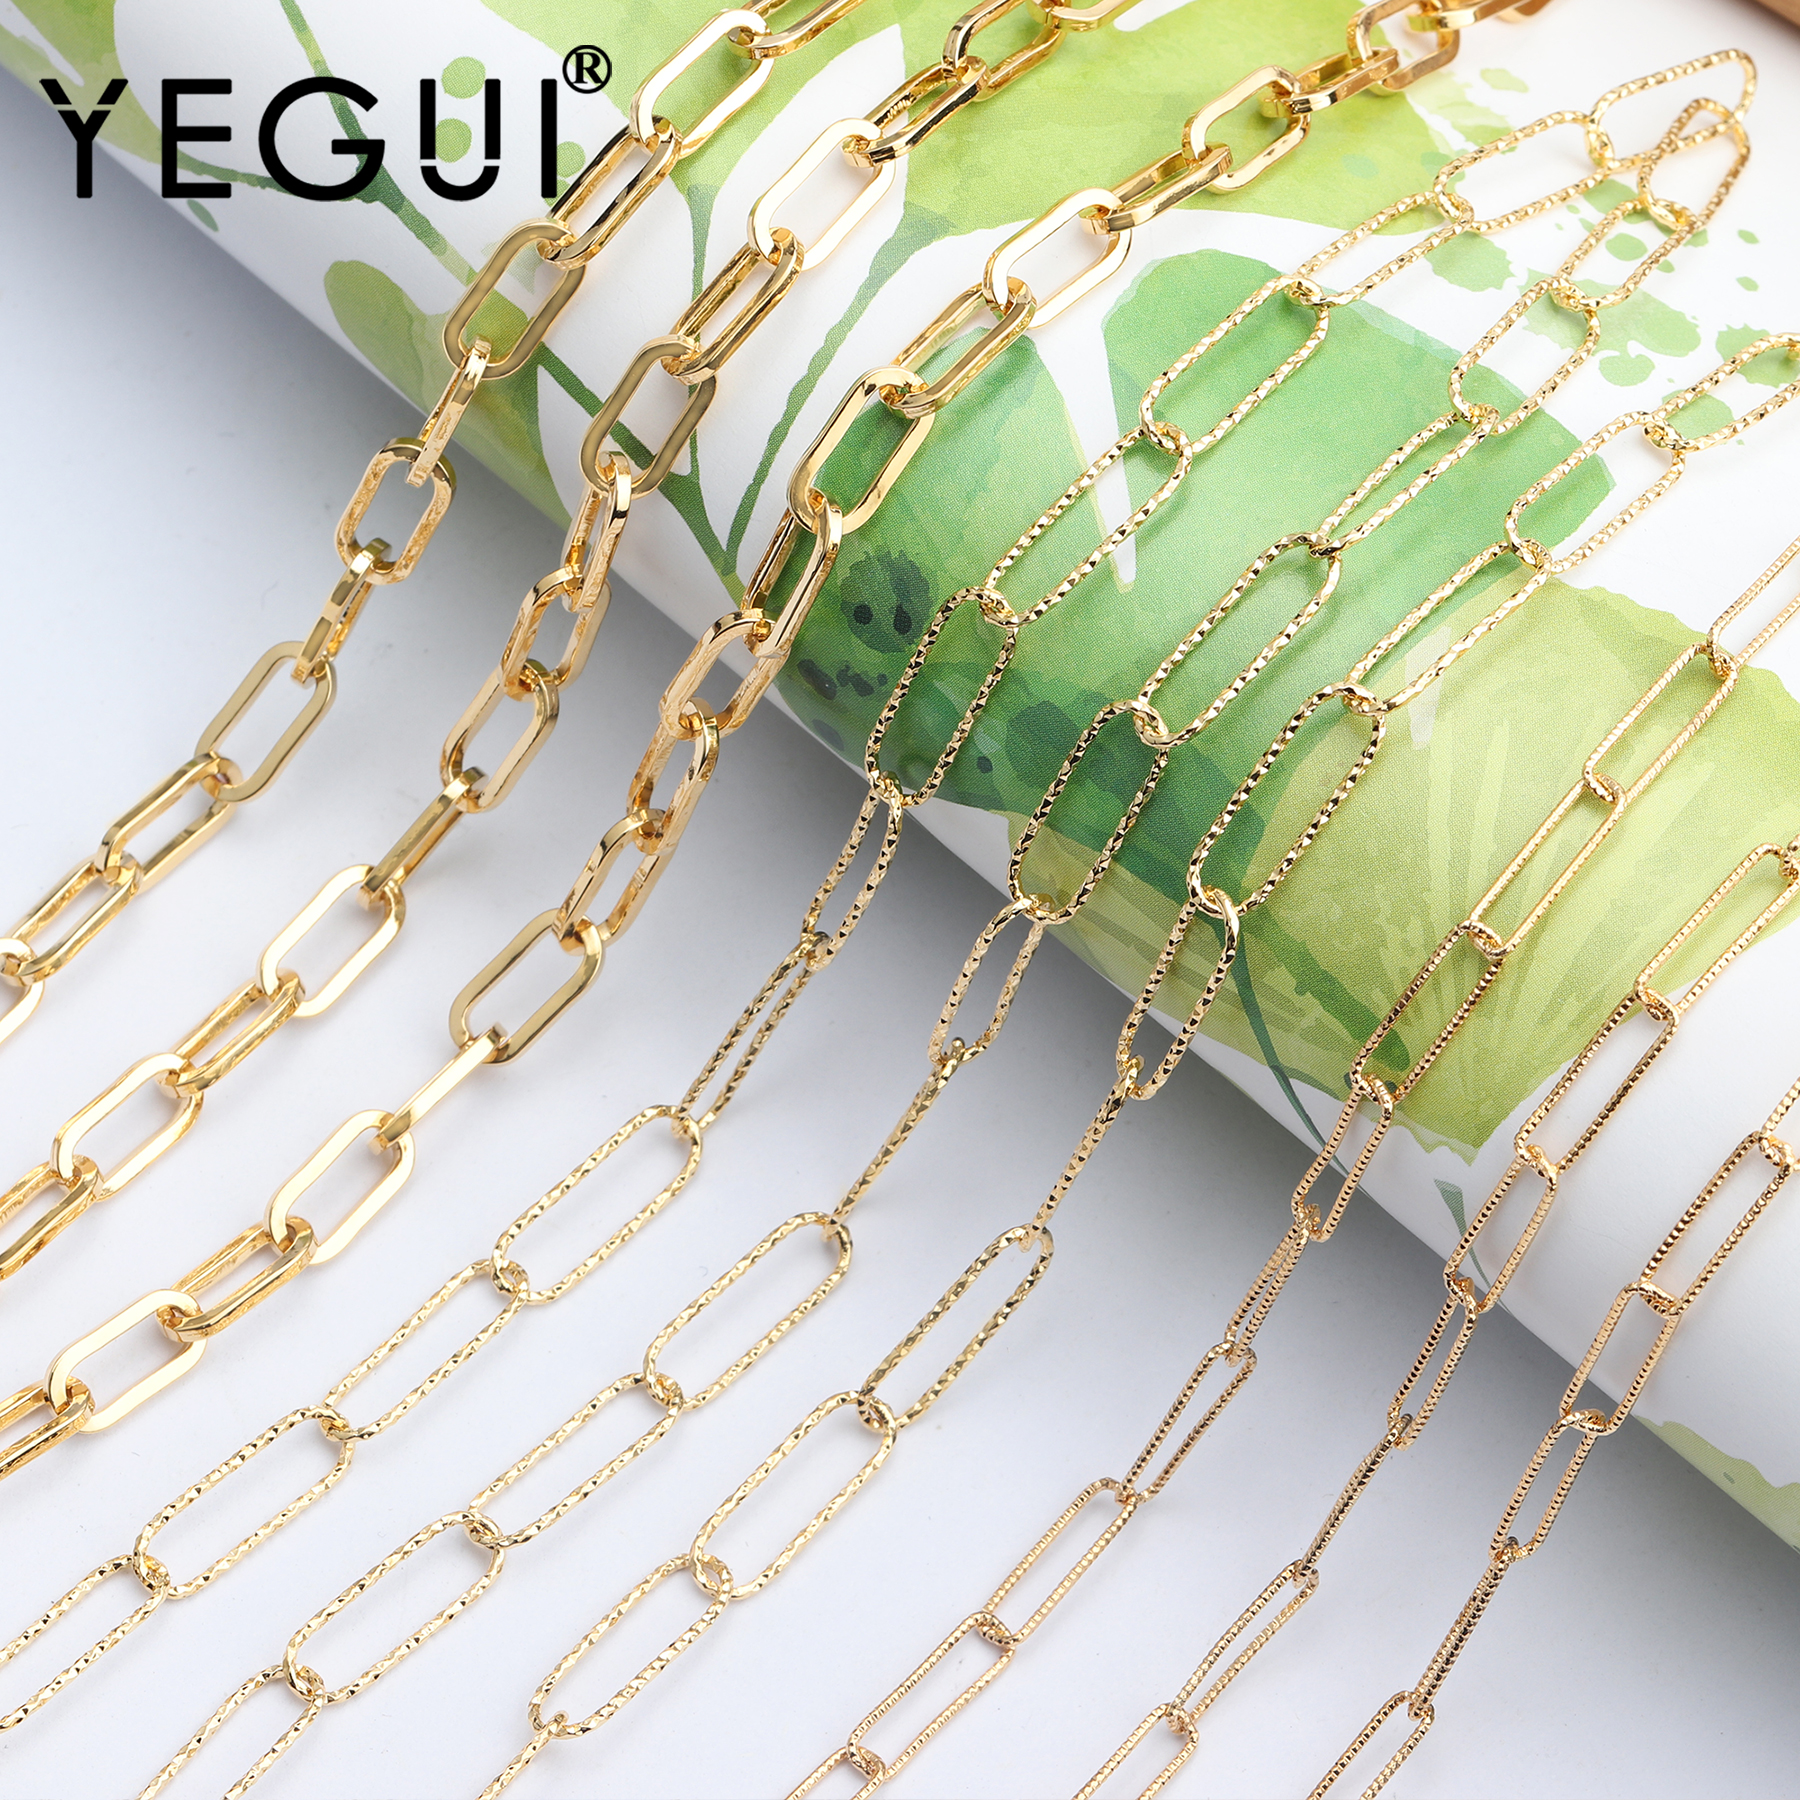 YEGUI C73,diy Chain,18k Gold Plated,jewelry Accessories,hand Made,copper Metal,diy Chain Necklace,jewelry Making,1m/lot